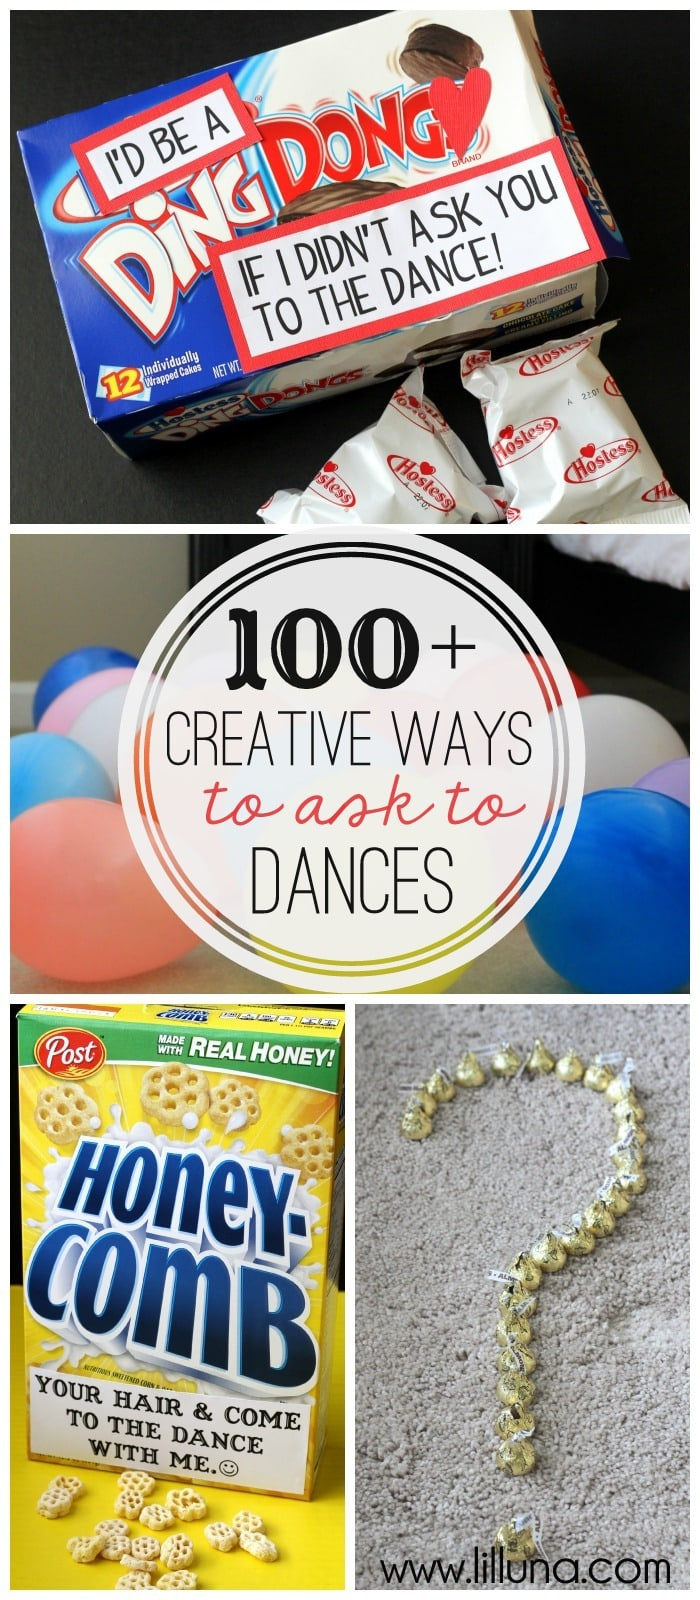 100+ Creative Ways To Ask To Dances  A Mustsee List On {